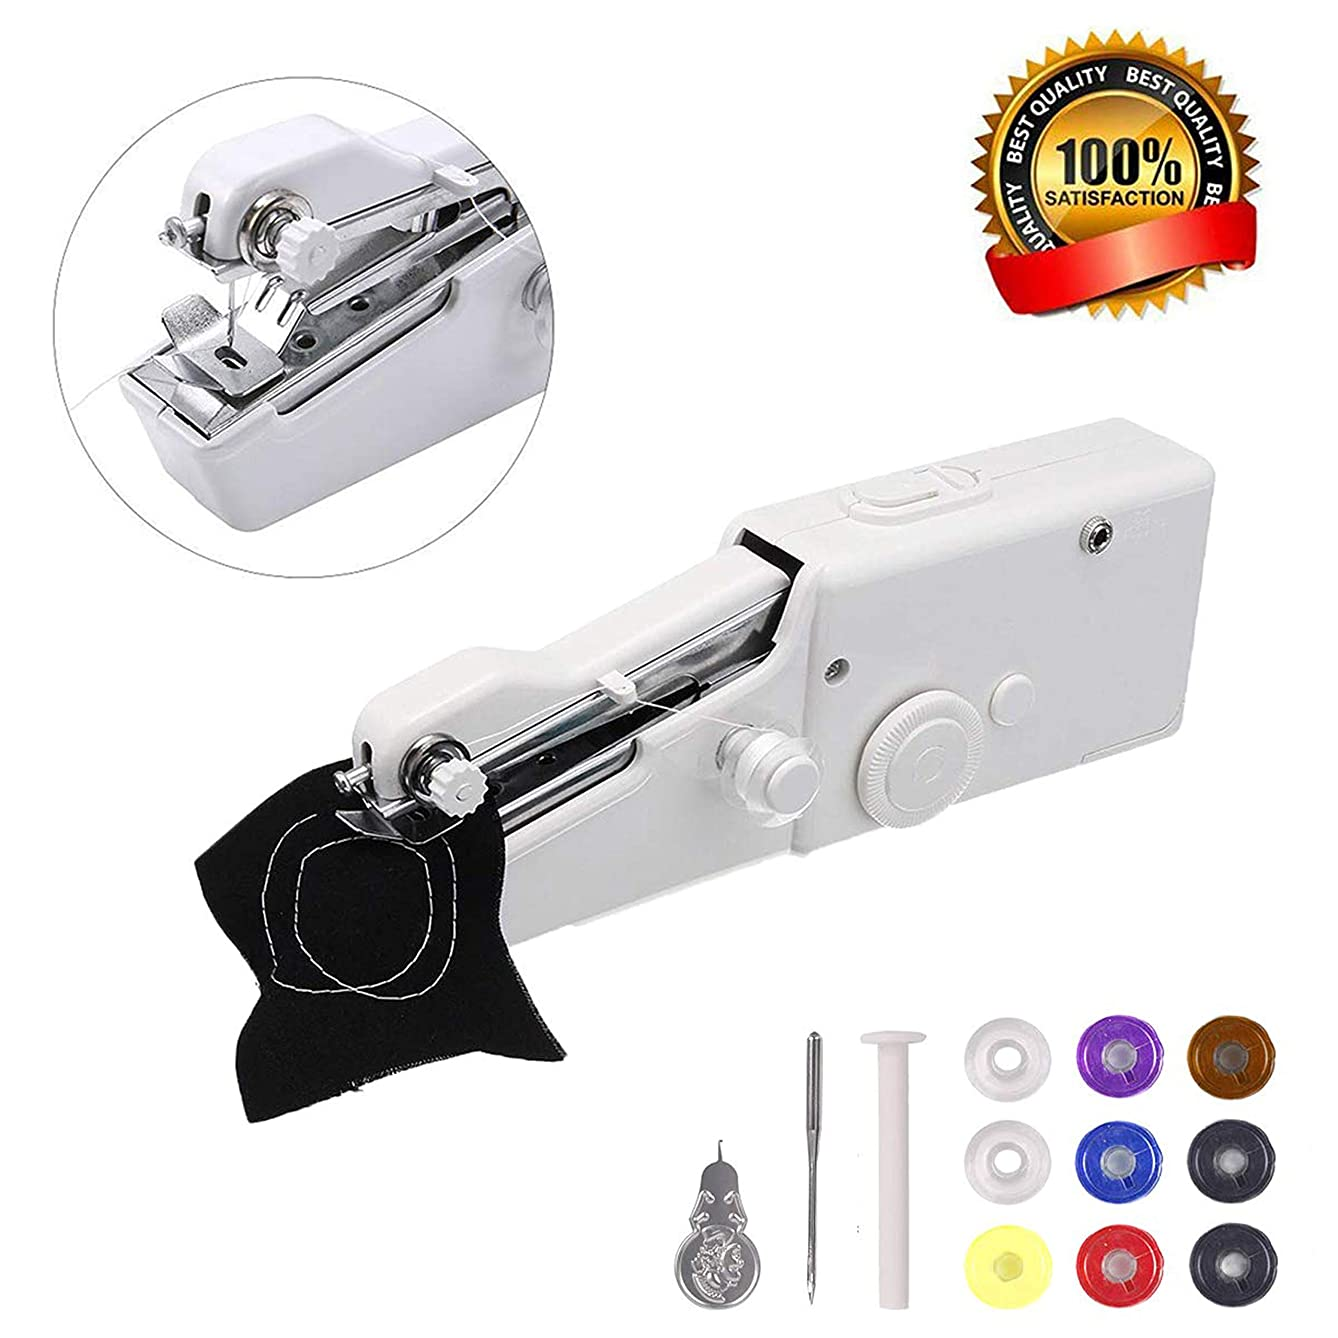 Portable Sewing Machine | Handheld Sewing Machine | Mini Sewing Machine for Home Travel Stitching | Quick Repairs Fabric Sewing DIY Craft Home Travel Use